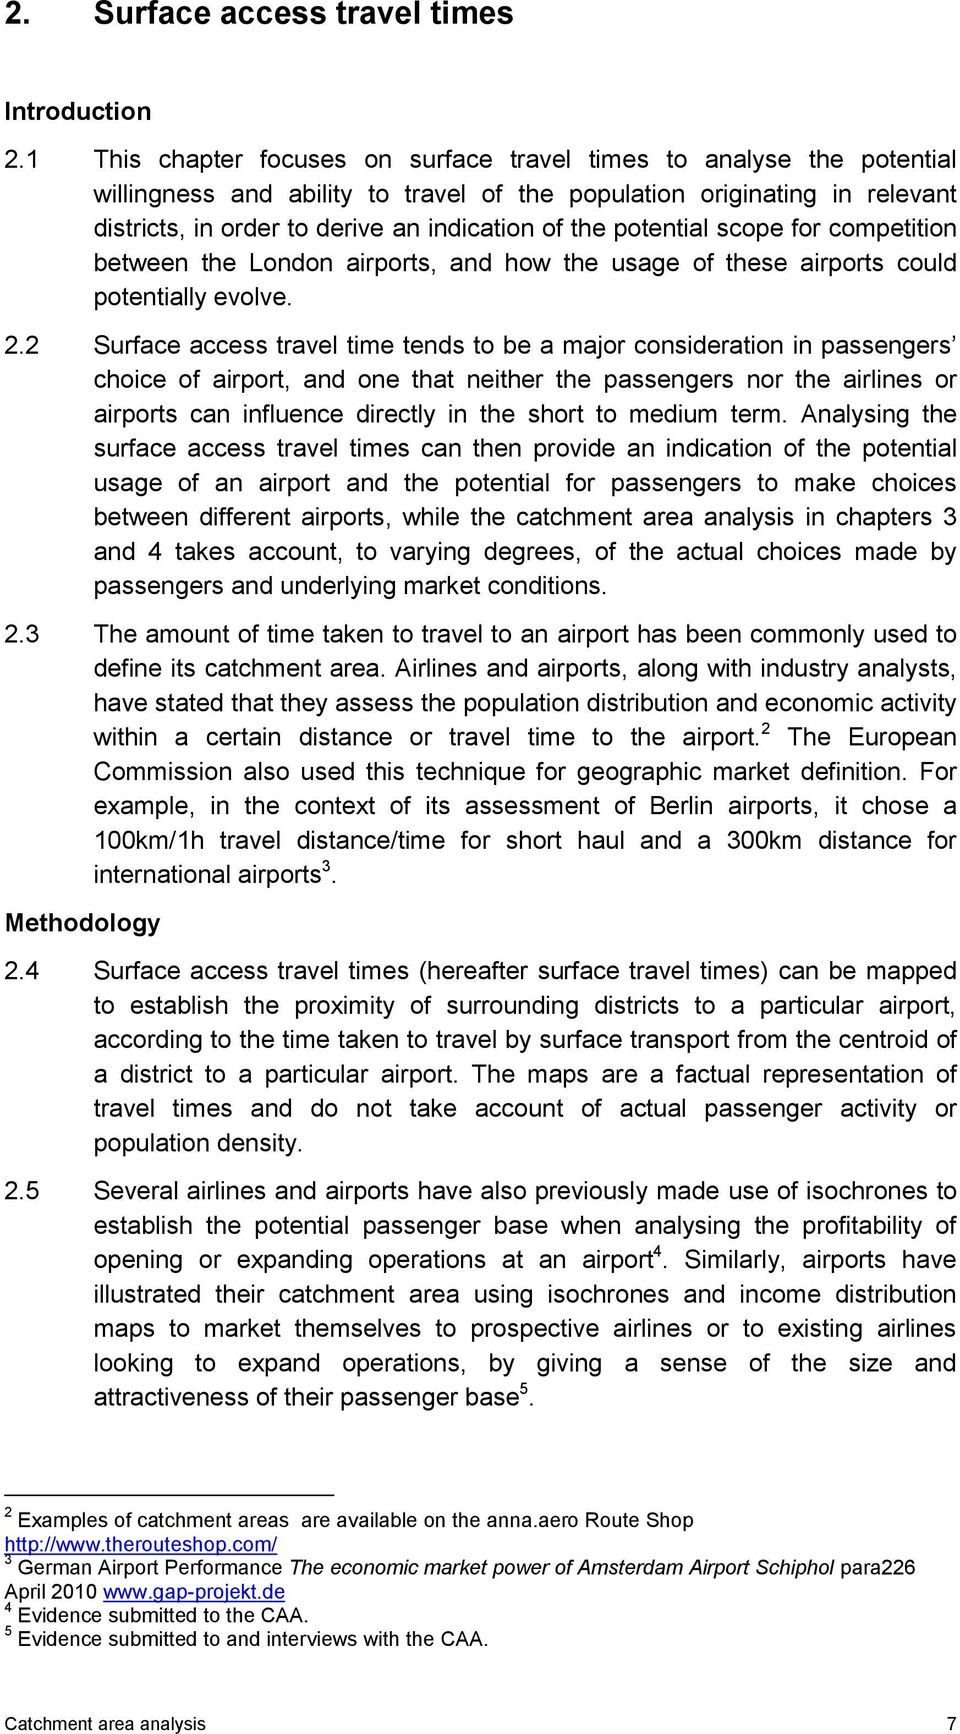 potential scope for competition between the London airports, and how the usage of these airports could potentially evolve. 2.